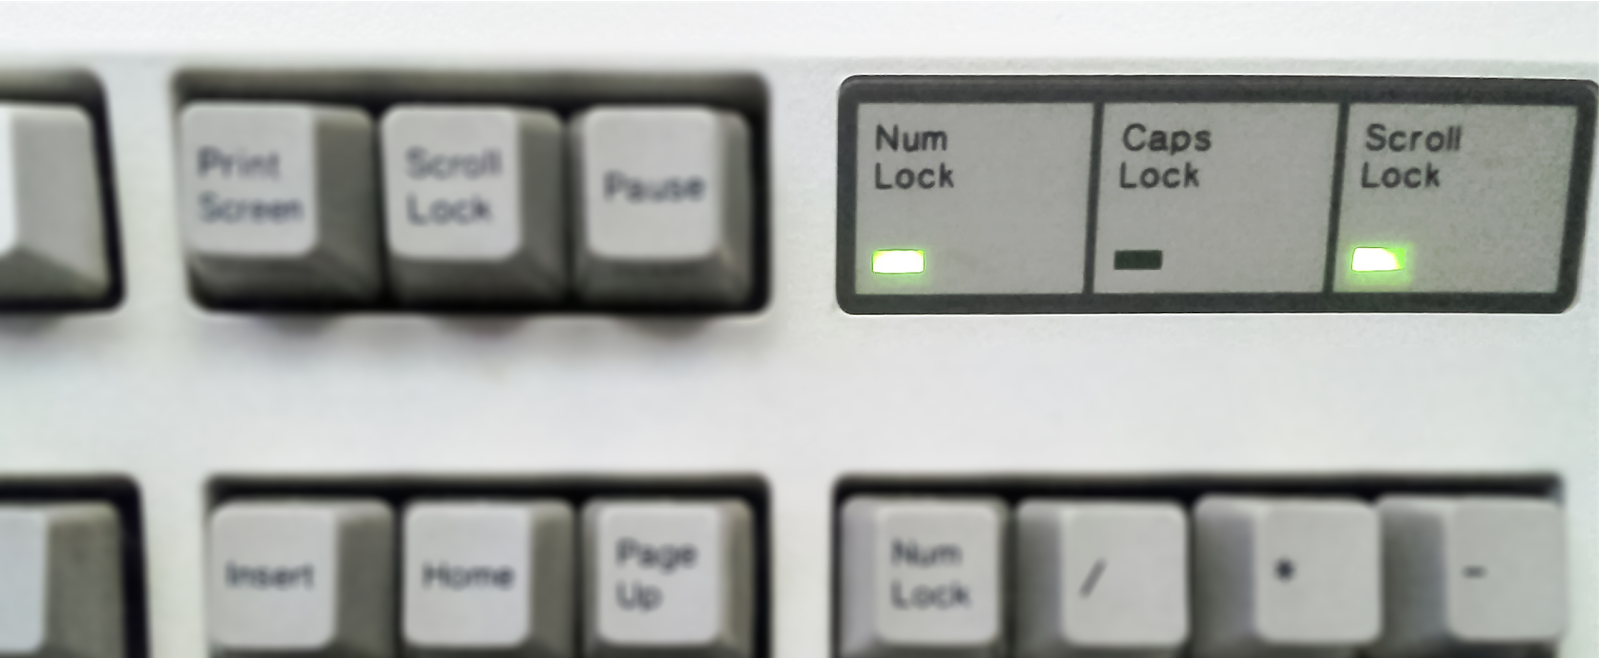 This will allow you to toggle the toggle keys tone on or off by holding down the num lock key for 5 seconds